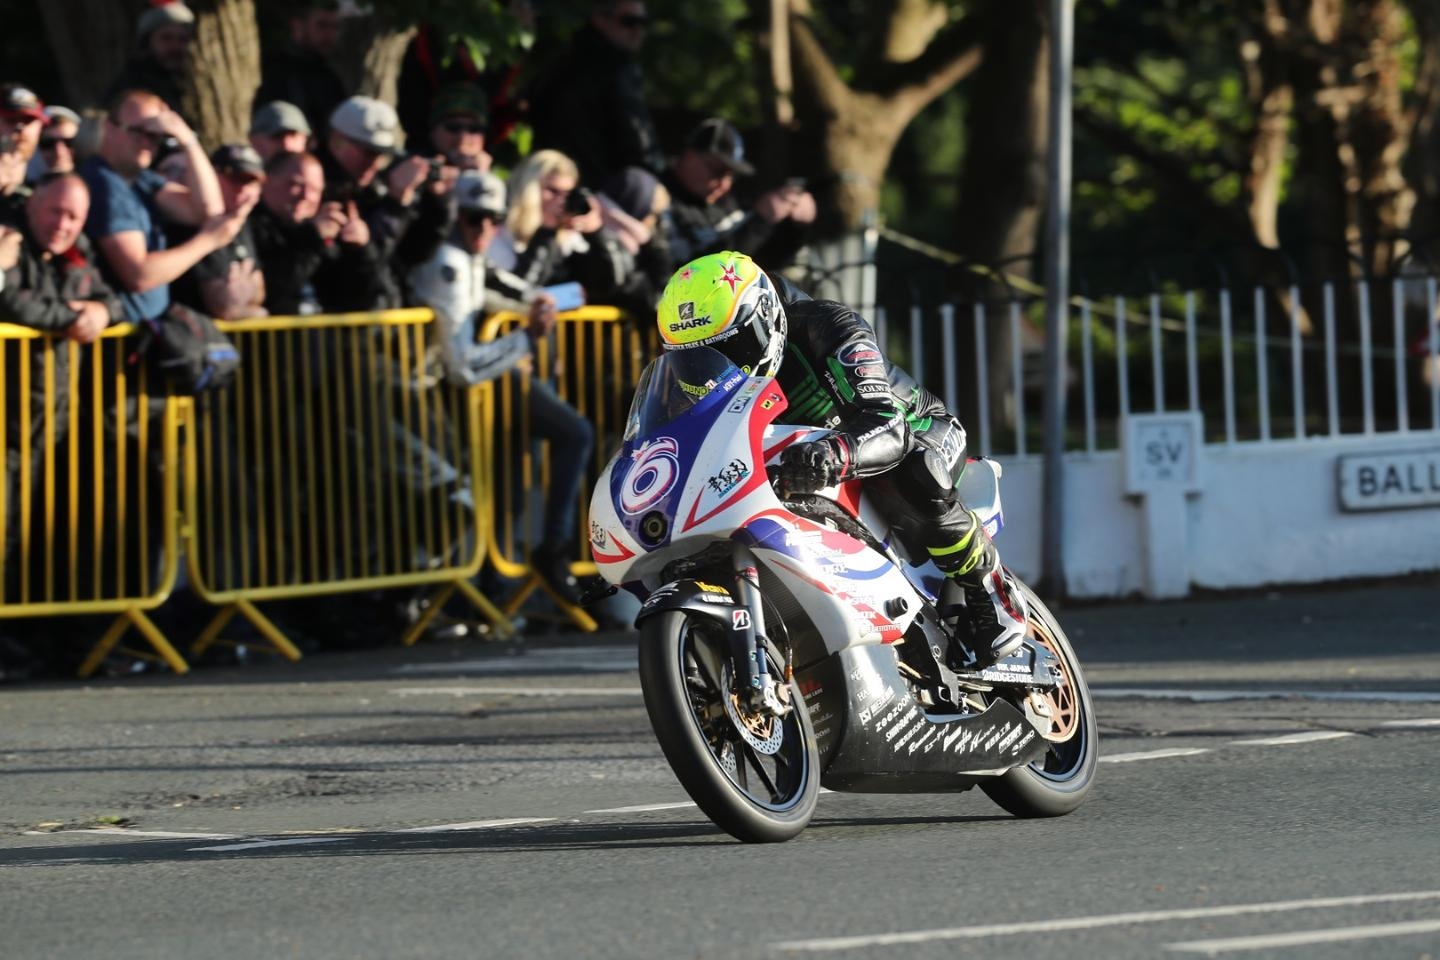 Ian Lougher on the Team Mirai electric prototype, on his way to a third-place finish